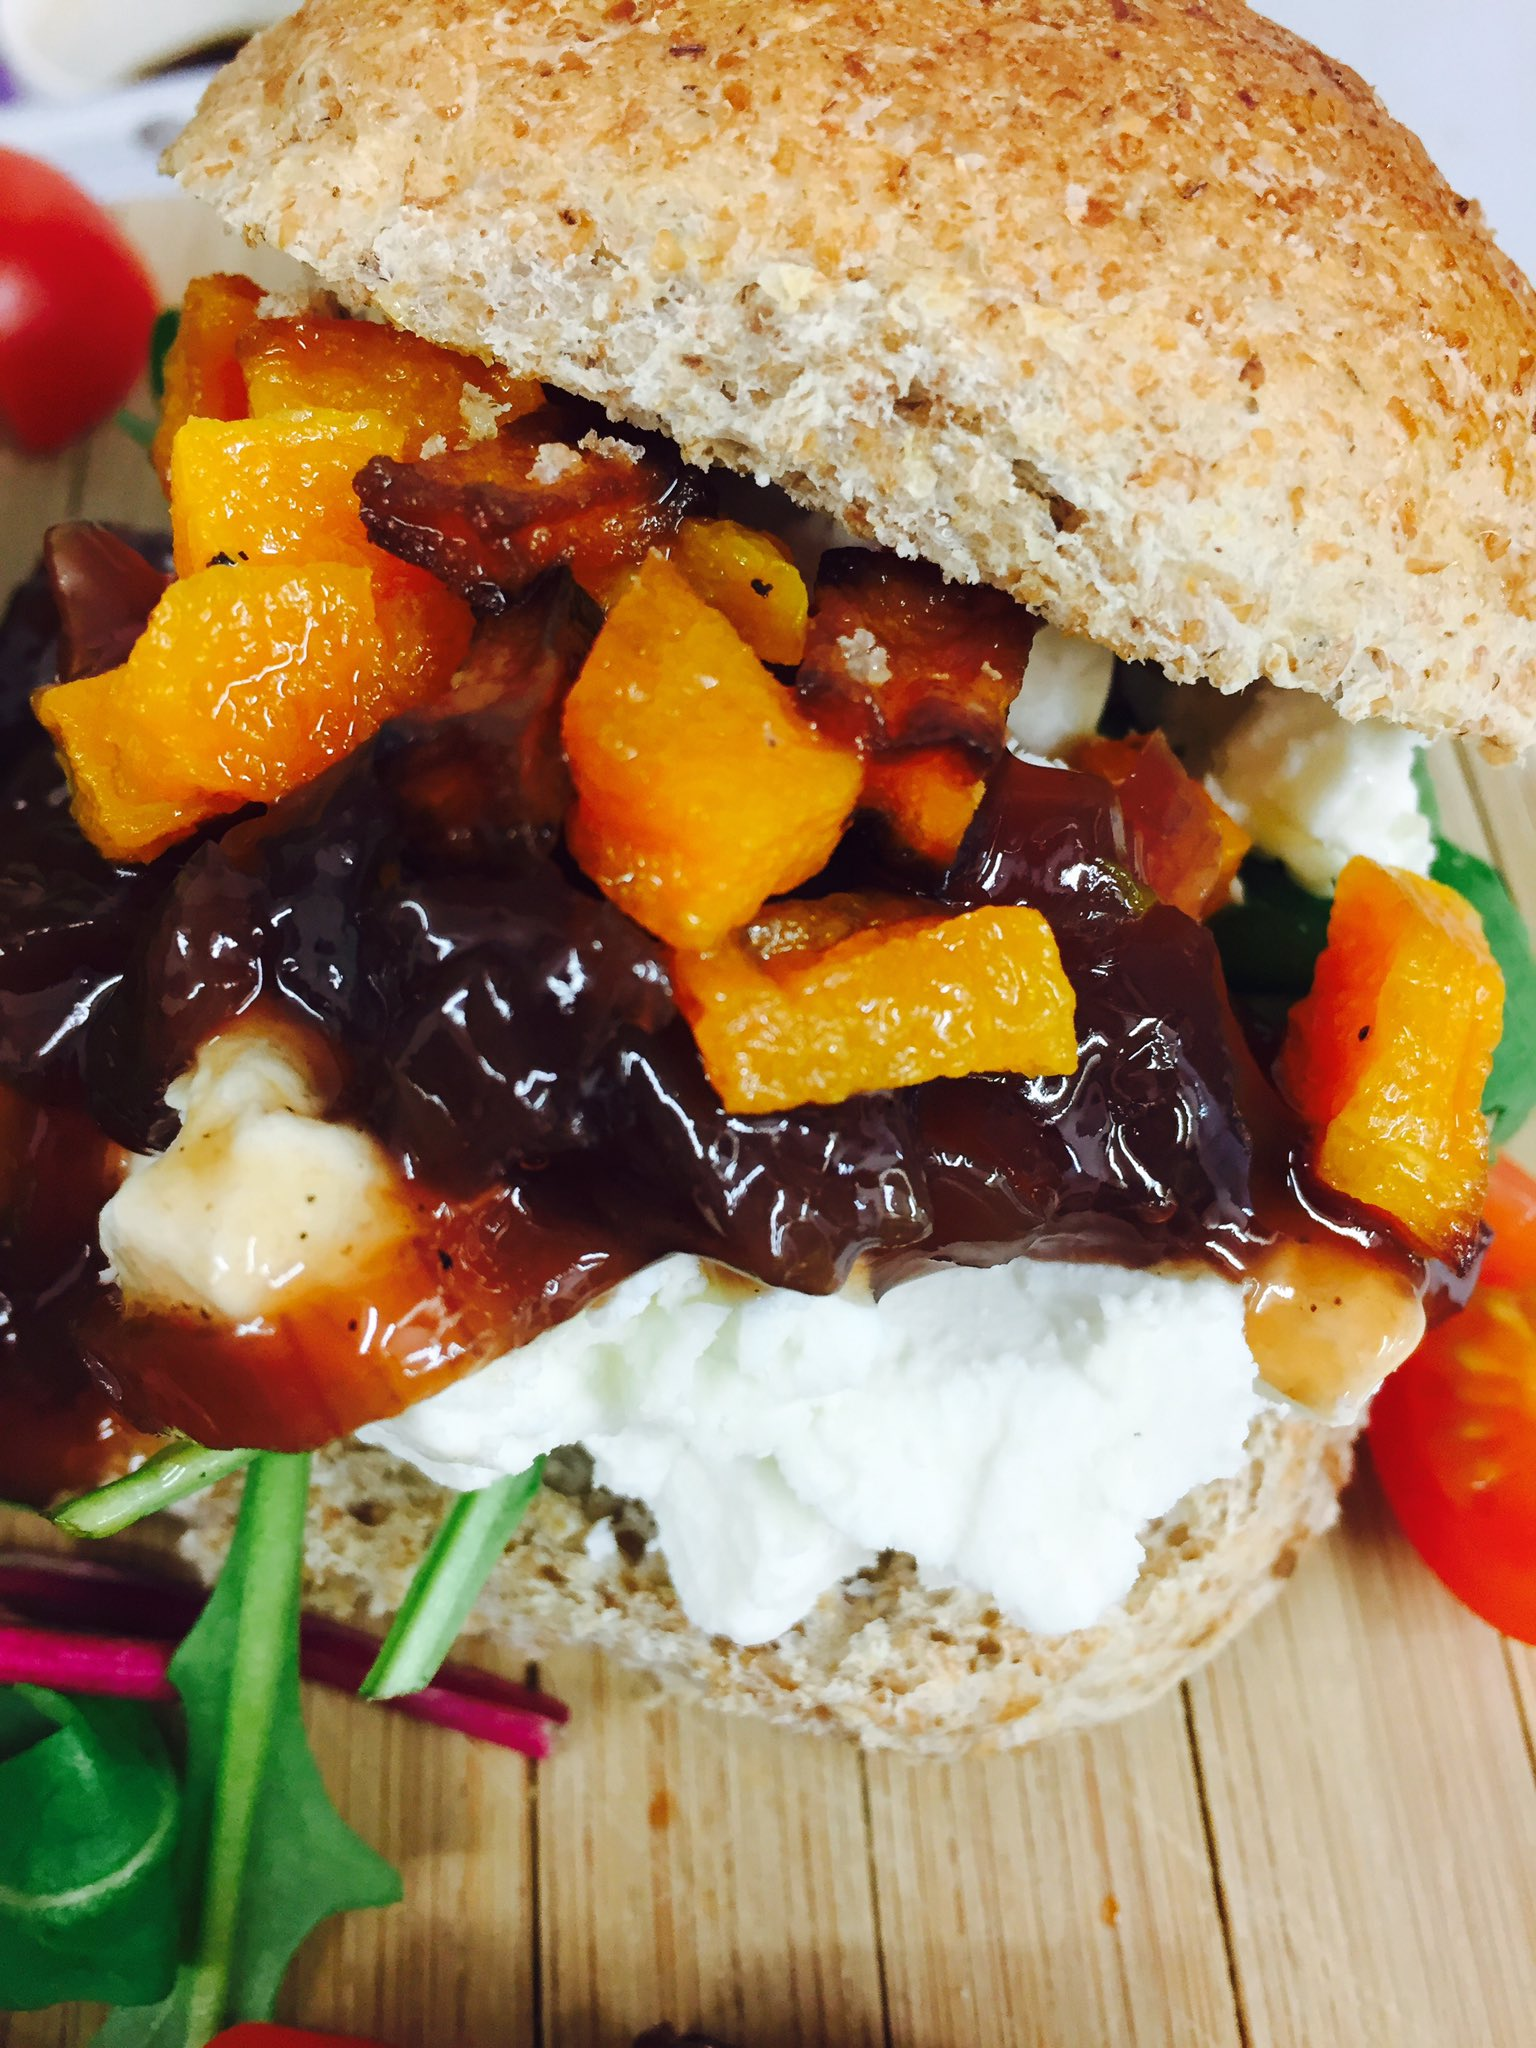 Goats cheese, caramelised onion chutney & butternut squash